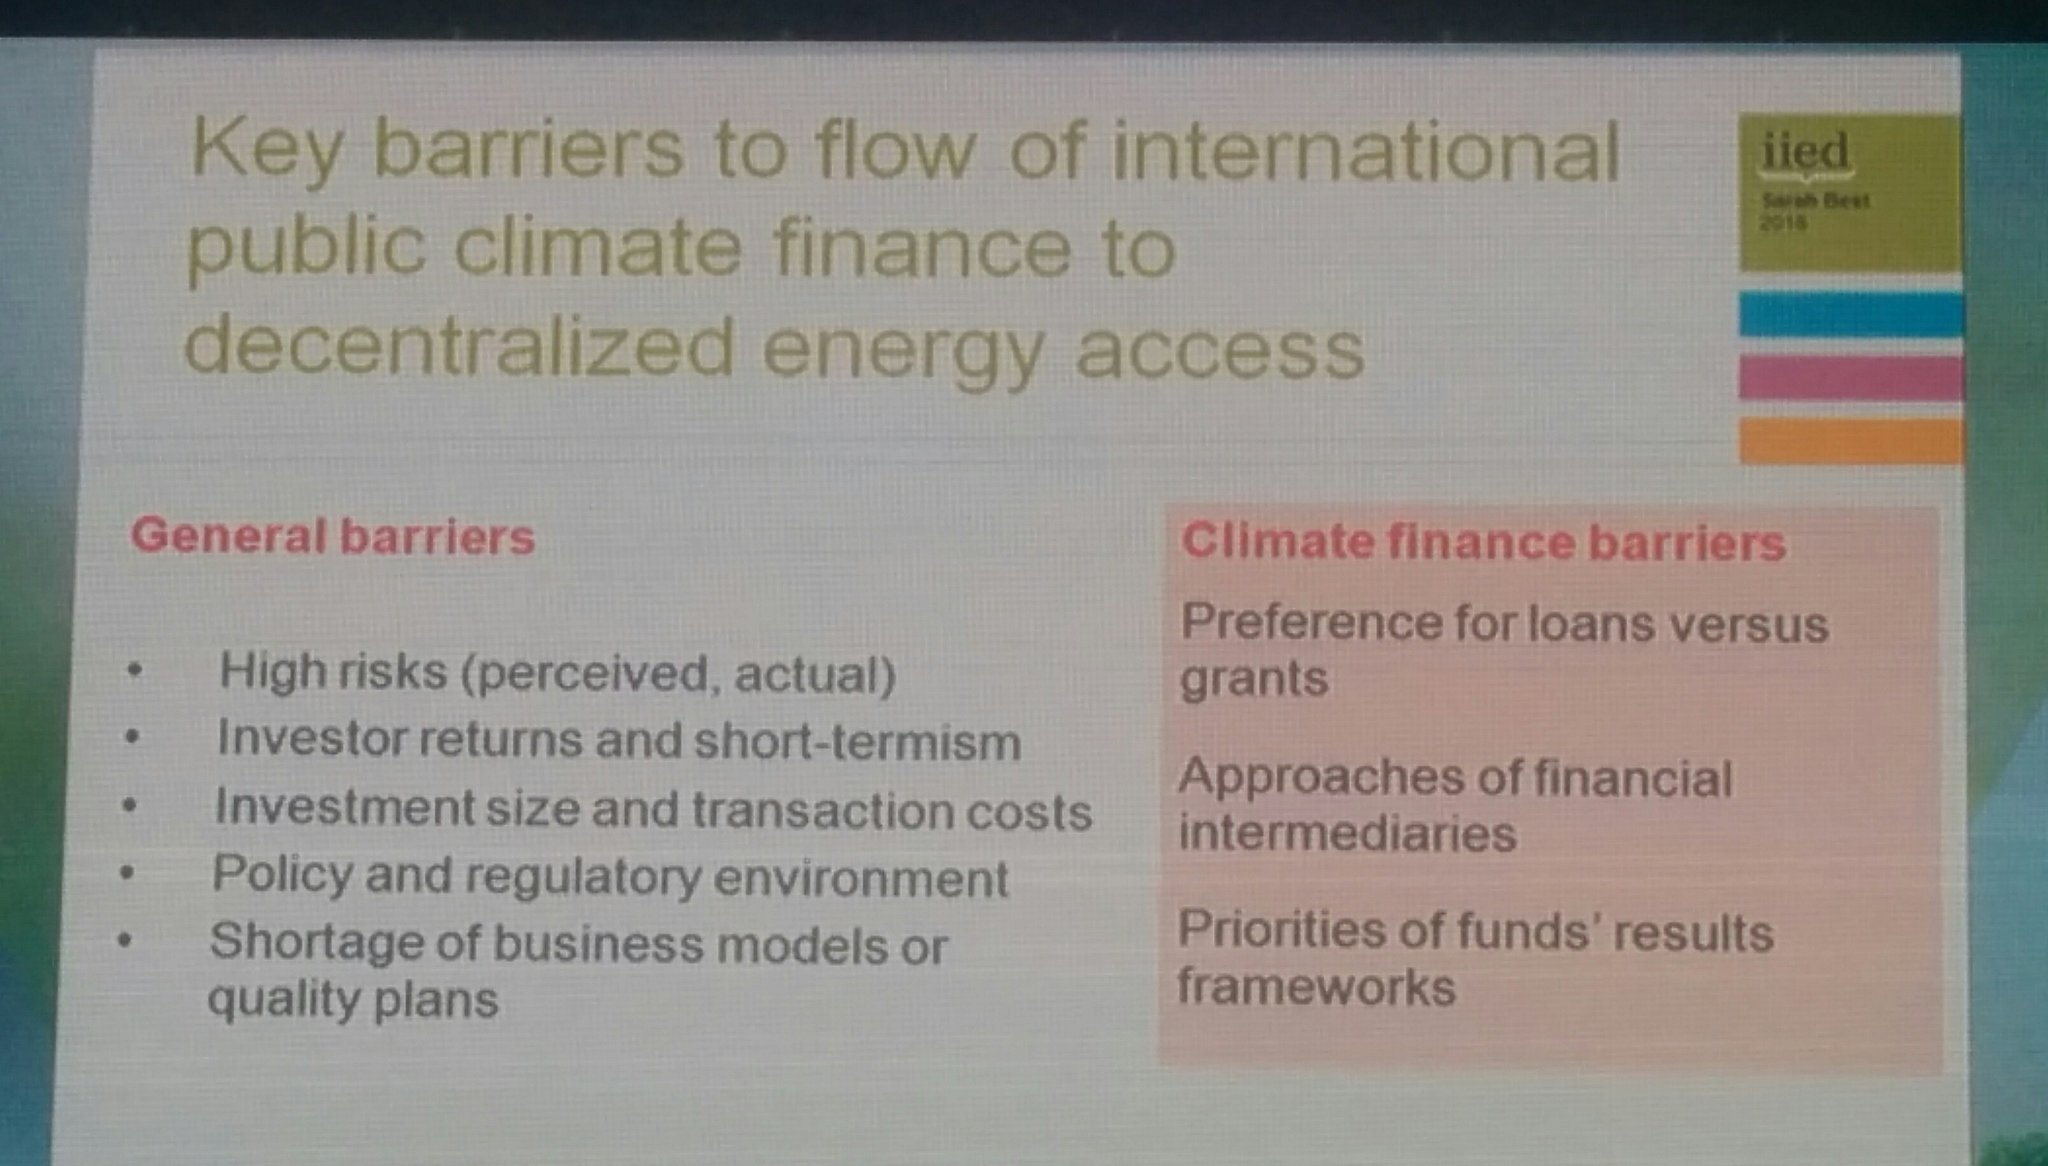 Three #climatefinance barriers identified by Best, including a preference for loans rather than grants for #energyaccess #COP22 https://t.co/06ZwVD0JEB